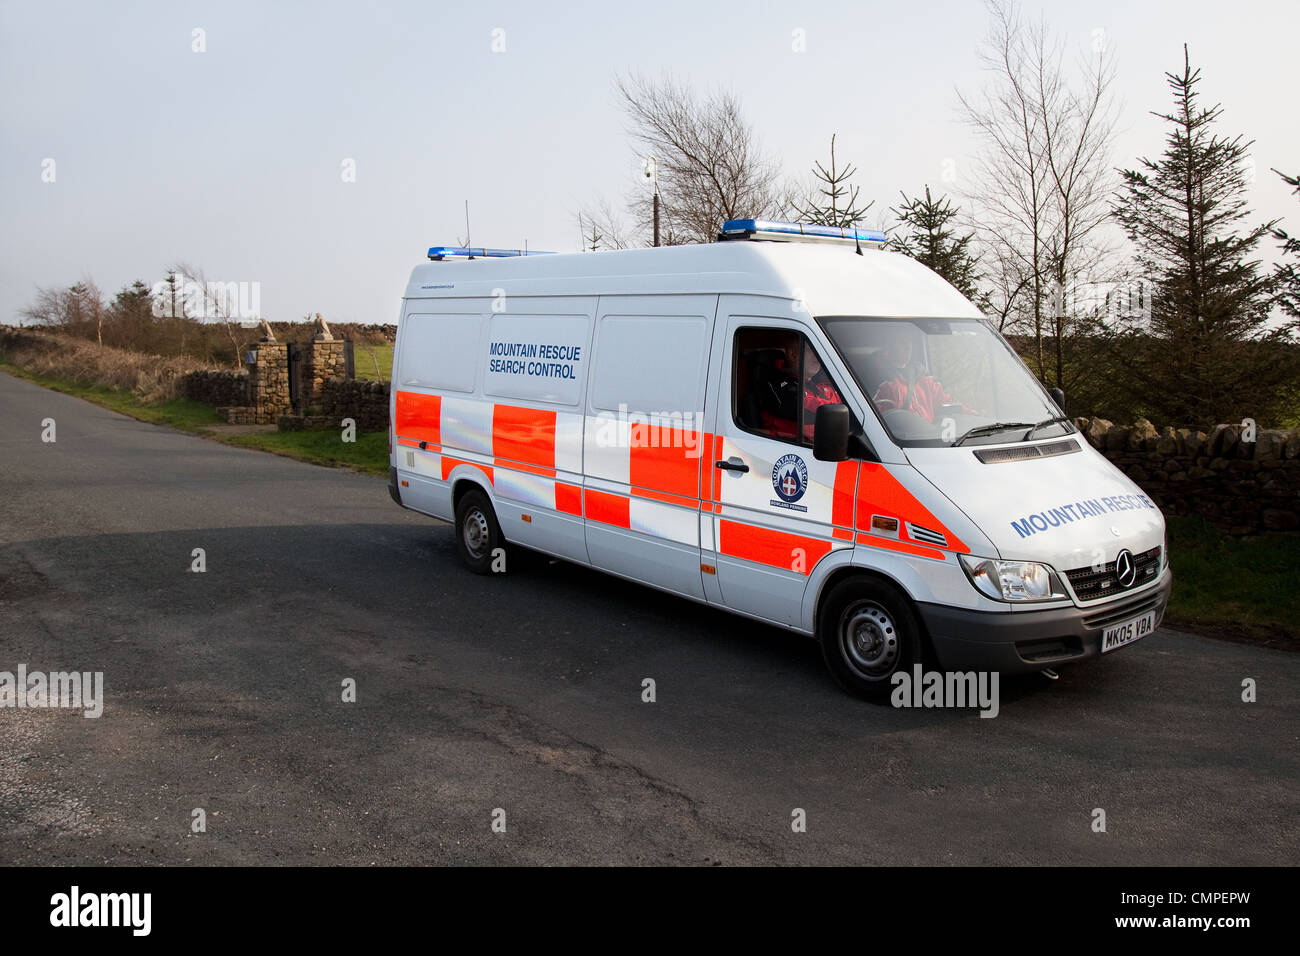 Mountain Rescue Search Control_The Bowland Pennine Mountain Rescue Team, Chipping Hill, Lancashire, UK - Stock Image